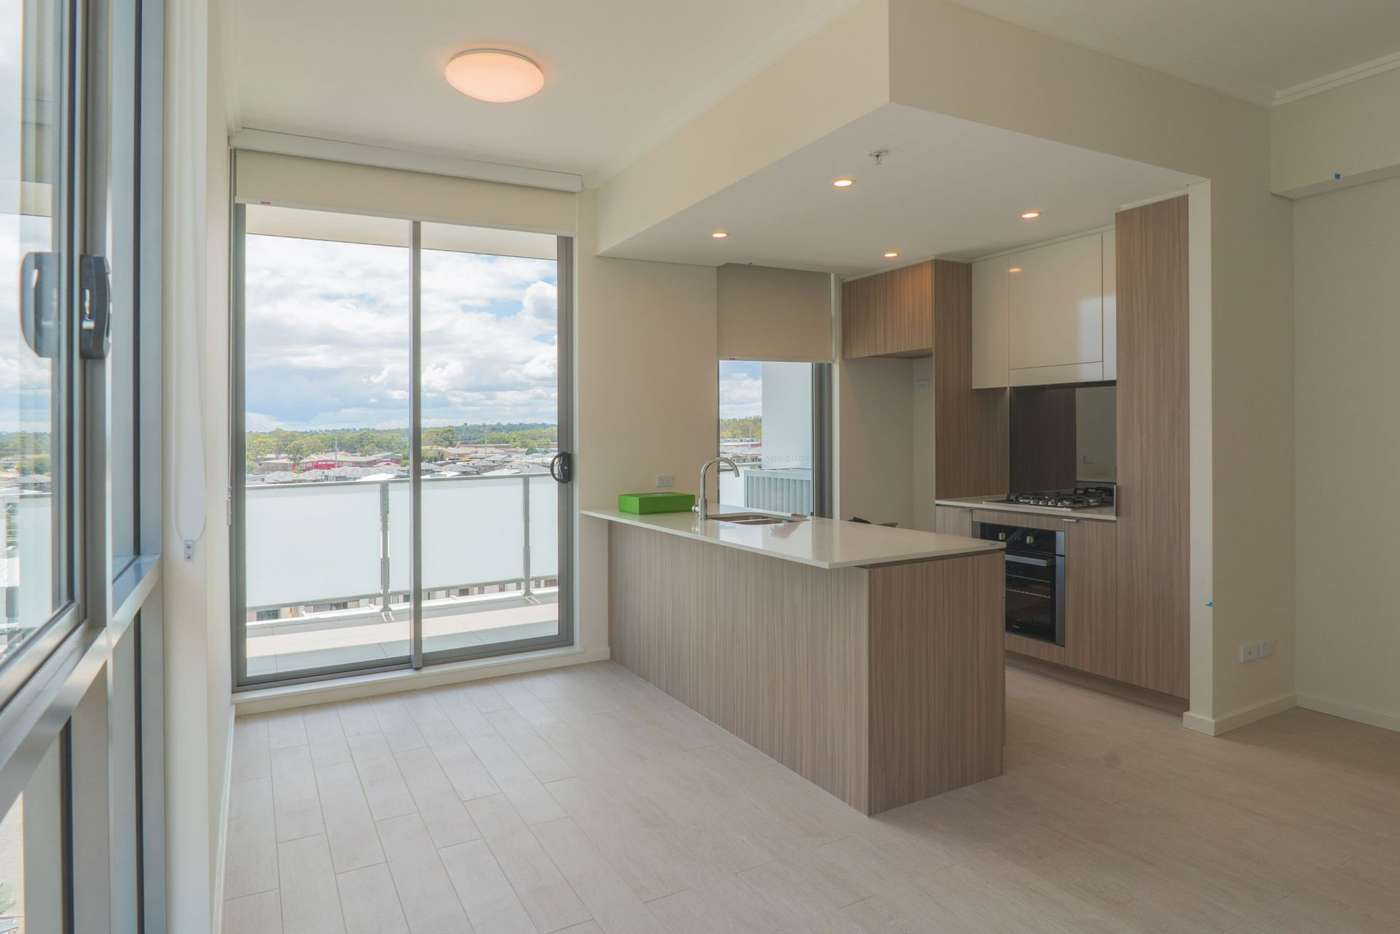 Main view of Homely apartment listing, 1-39 Lord Sheffield Circuit, Penrith NSW 2750